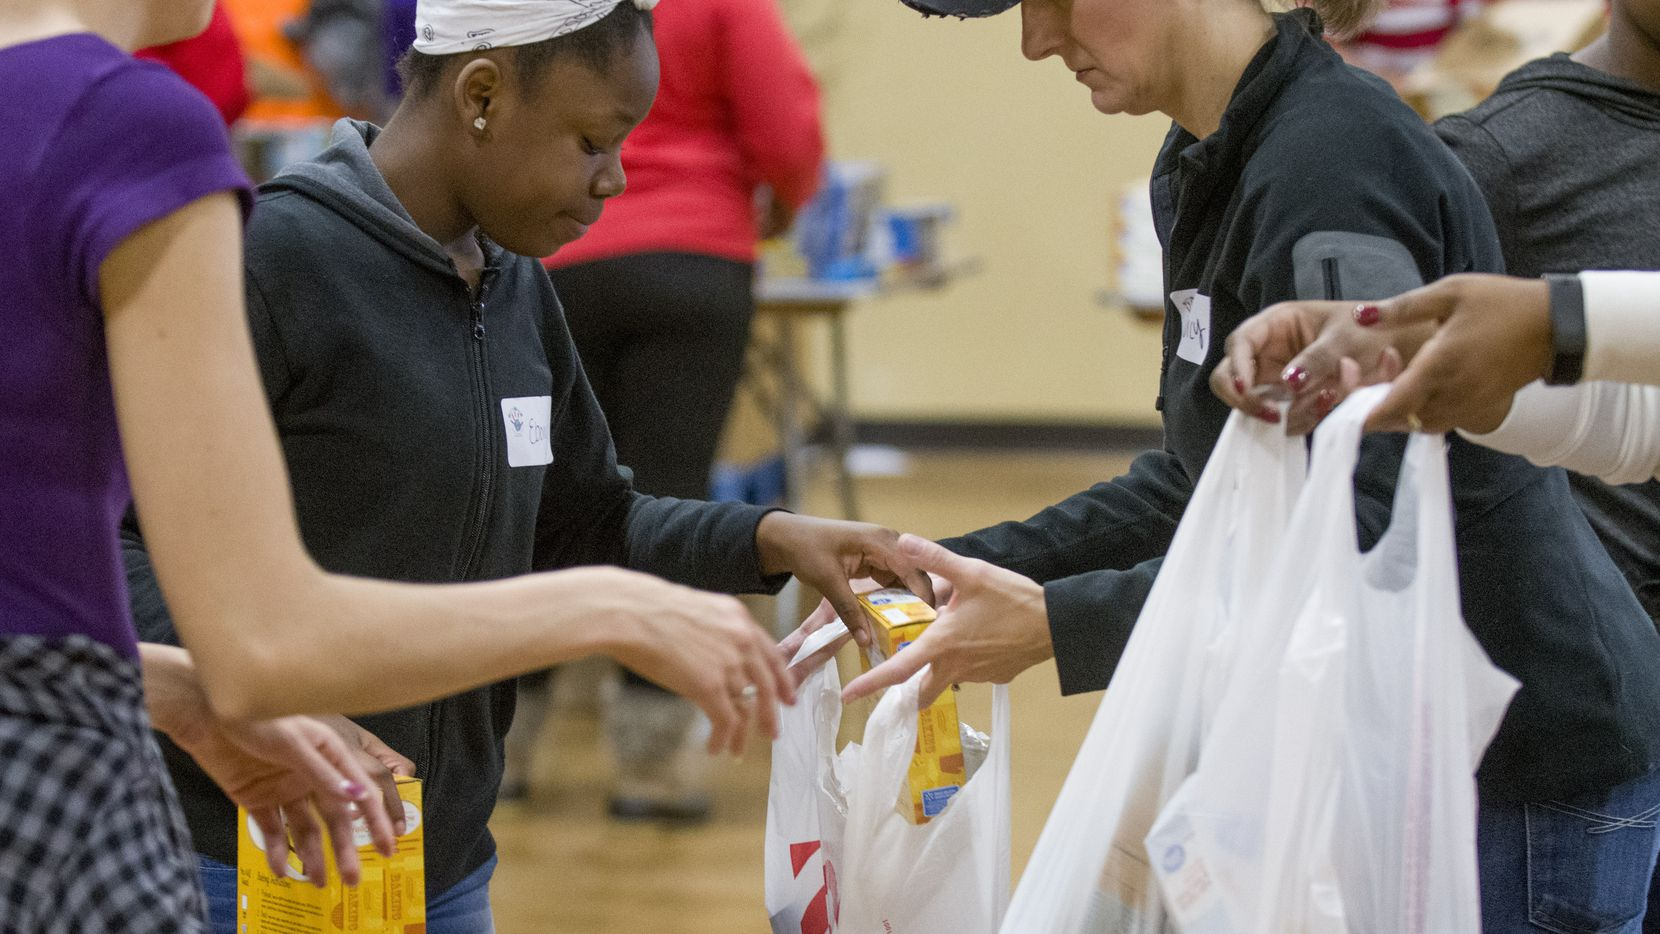 Volunteers at Youth World fill bags of groceries for 300 needy families who received food and Christmas presents during the annual giveaway.